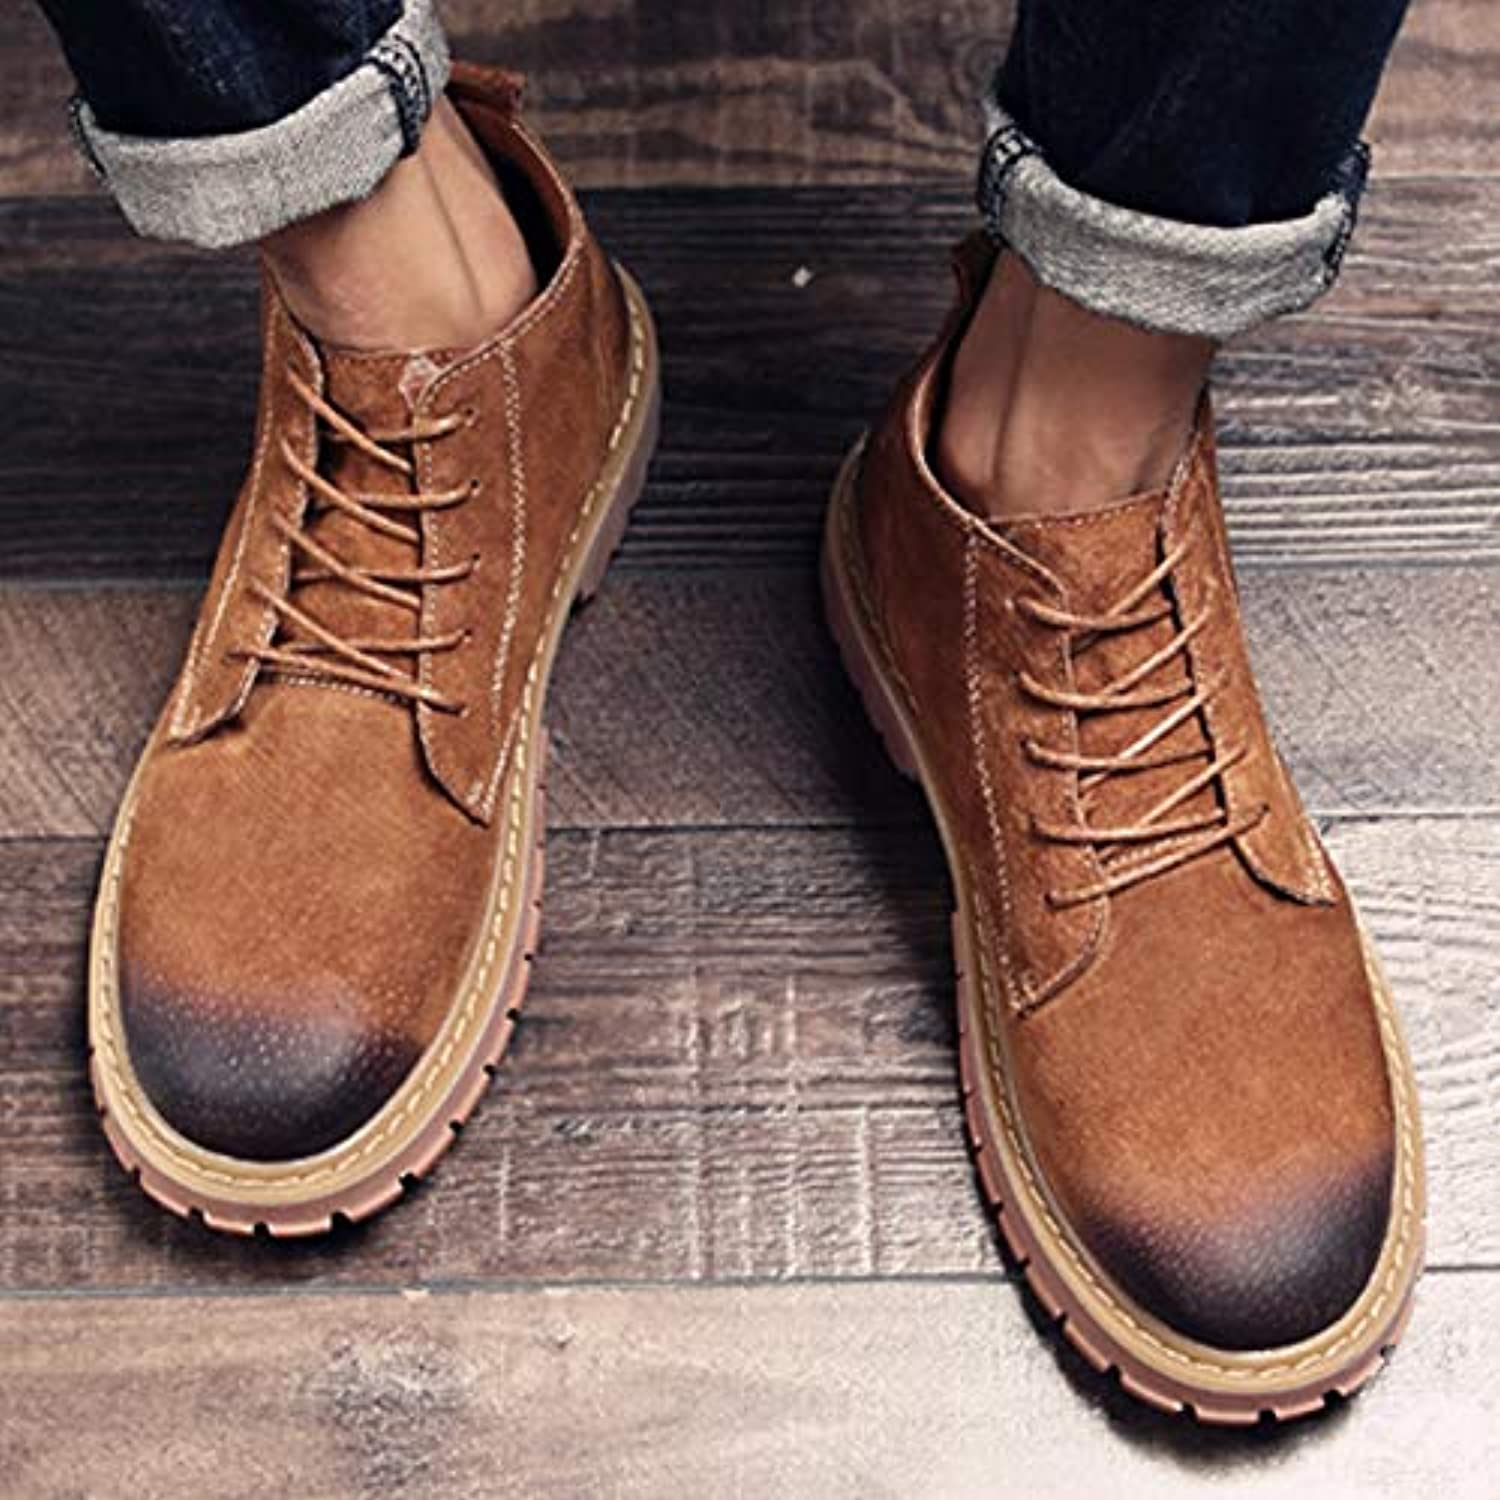 LOVDRAM Boots Men's Martin Boots Men'S Retro To Help Wild Short Boots Tooling Men'S shoes Men'S Boots High To Help Winter